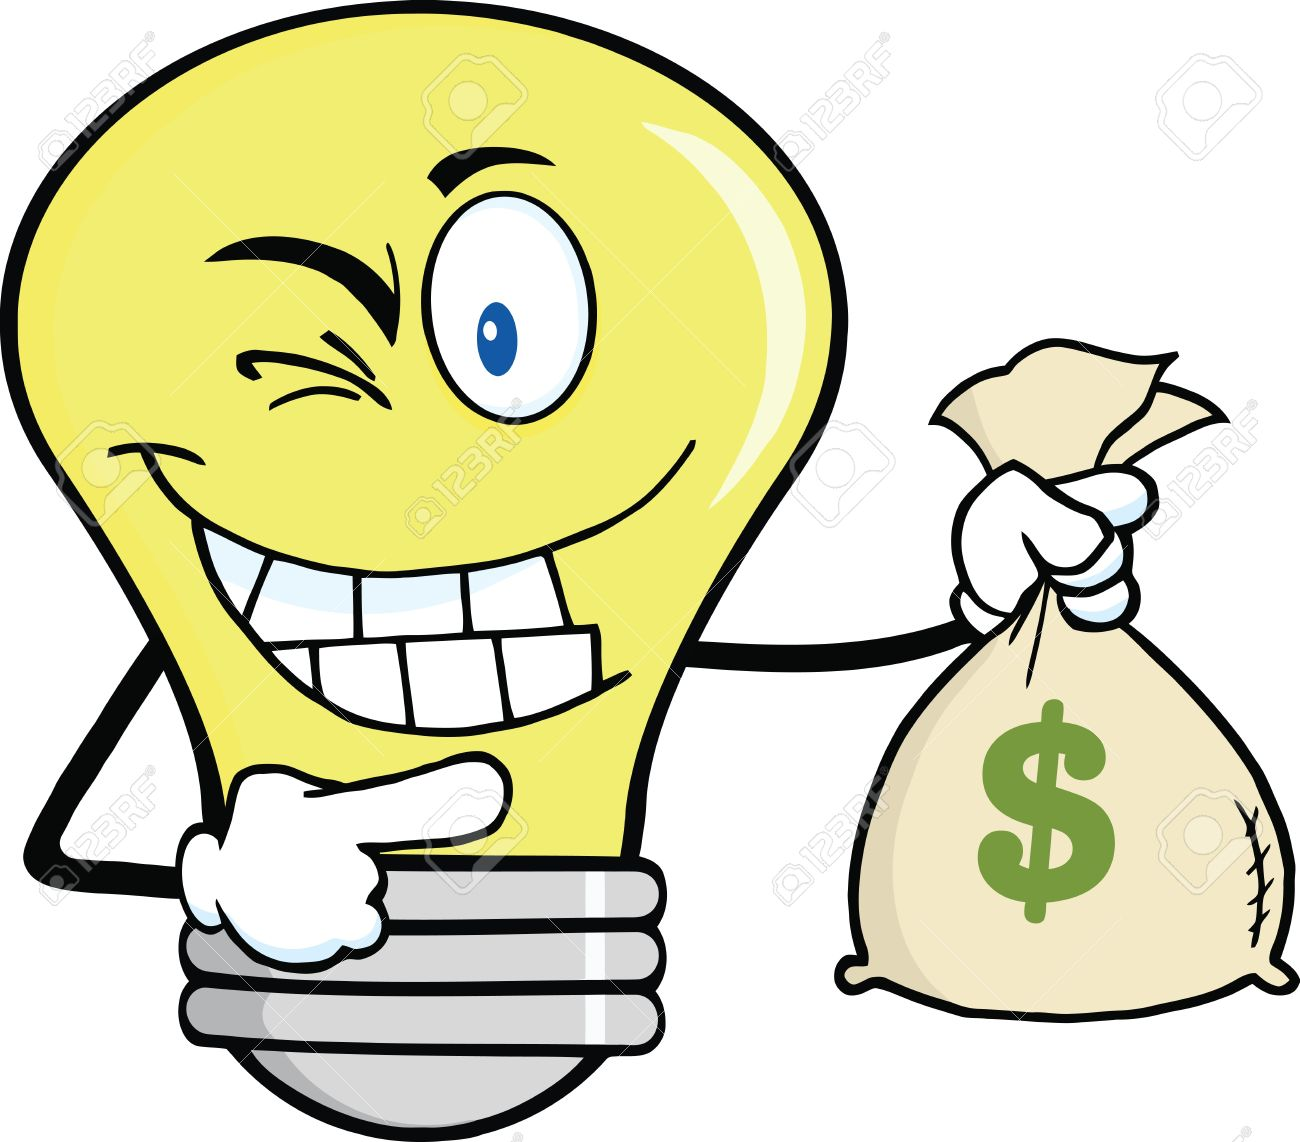 1300x1142 Light Bulb Cartoon Mascot Character Holding A Bag Of Money Royalty